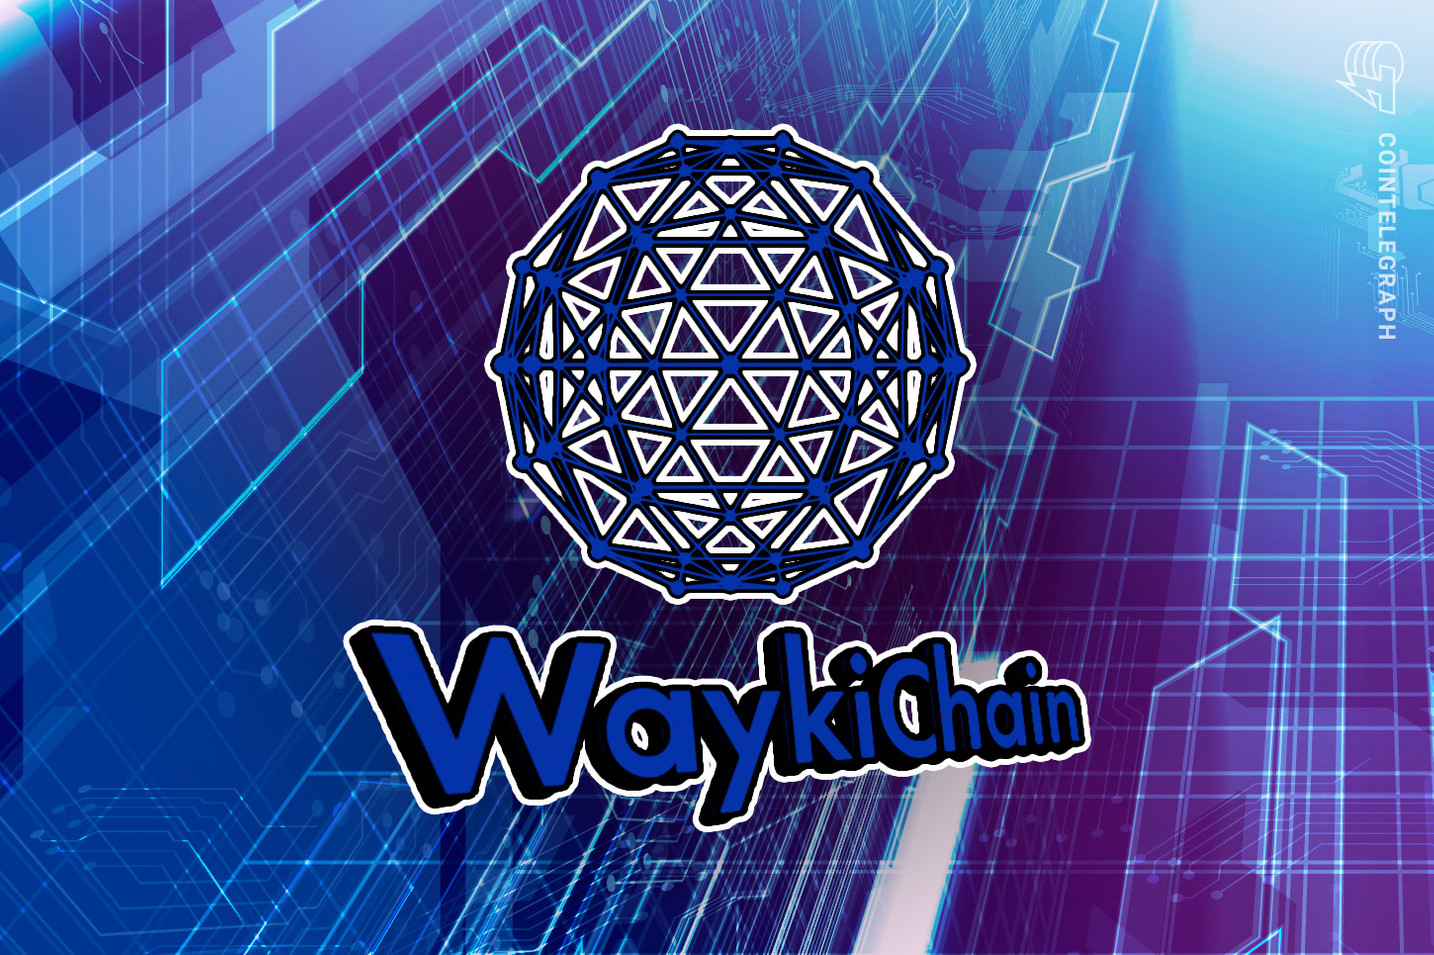 Traditional Investors Get Talk with Cryptomarket From WaykiChain(WICC) X CTFEX